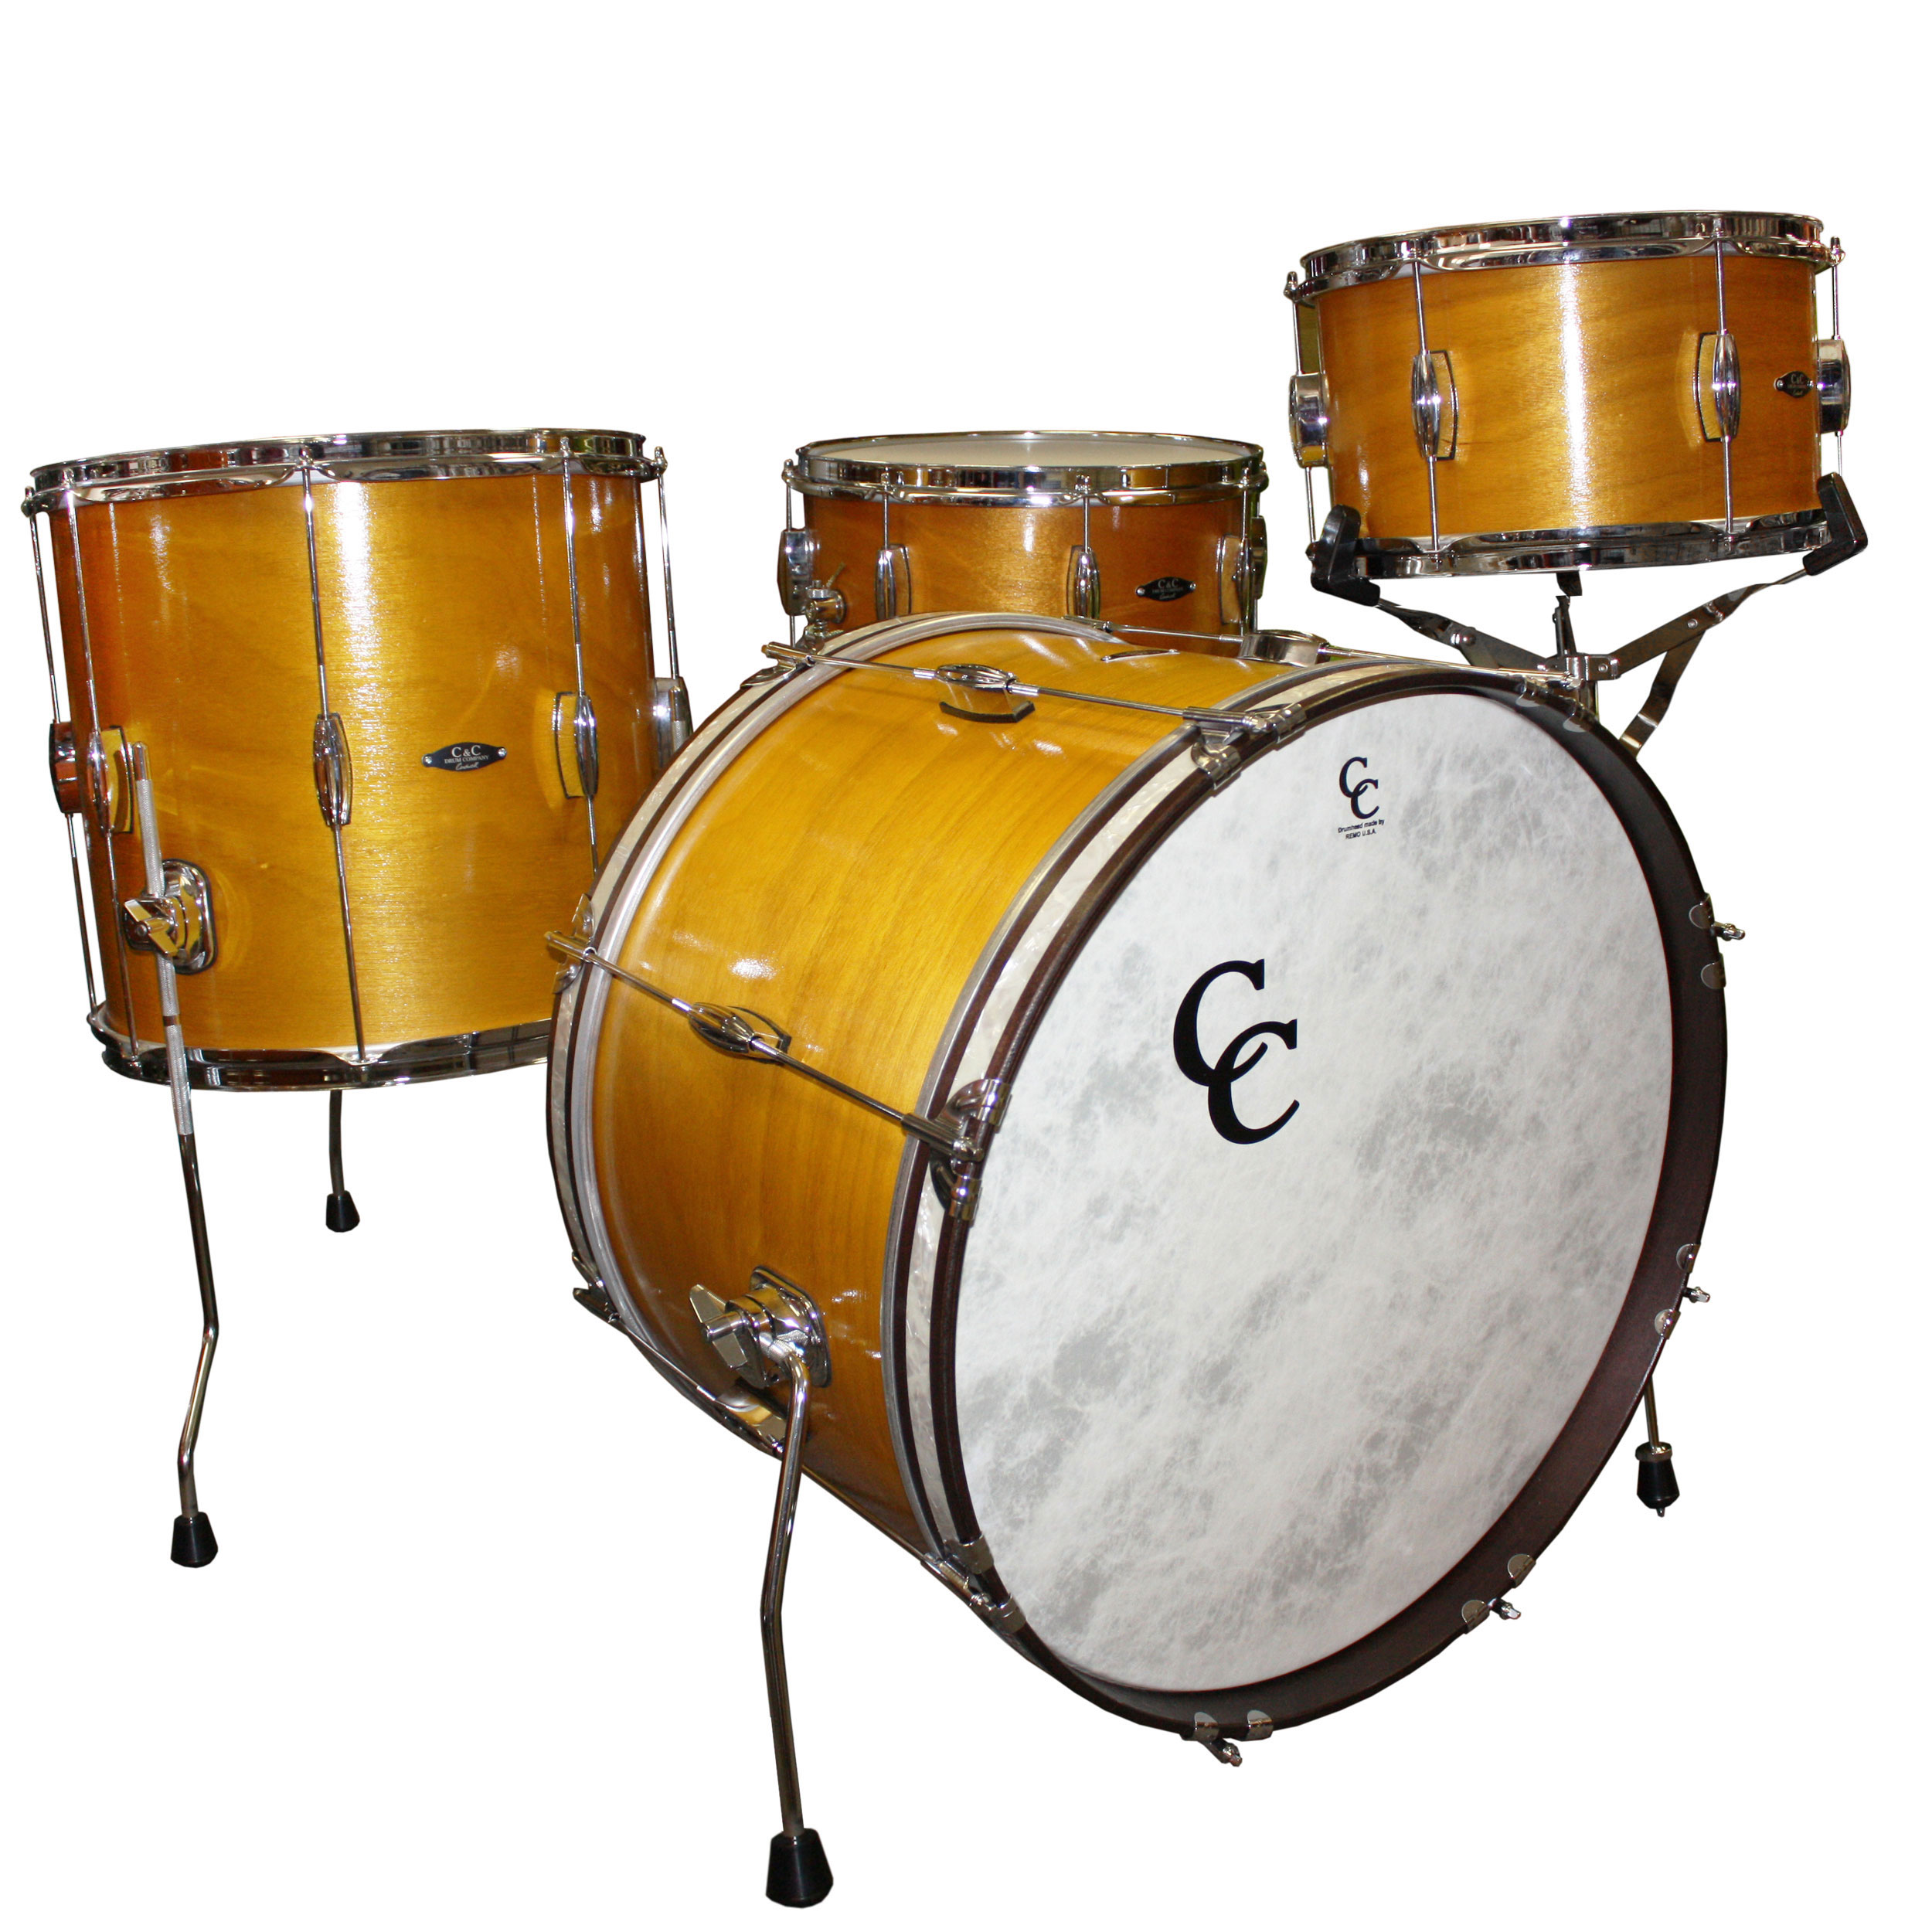 "C&C Drum Player Date Big Beat 4-Piece Drum Set Shell Pack (22"" Bass, 13/16"" Toms, 14"" Snare)"